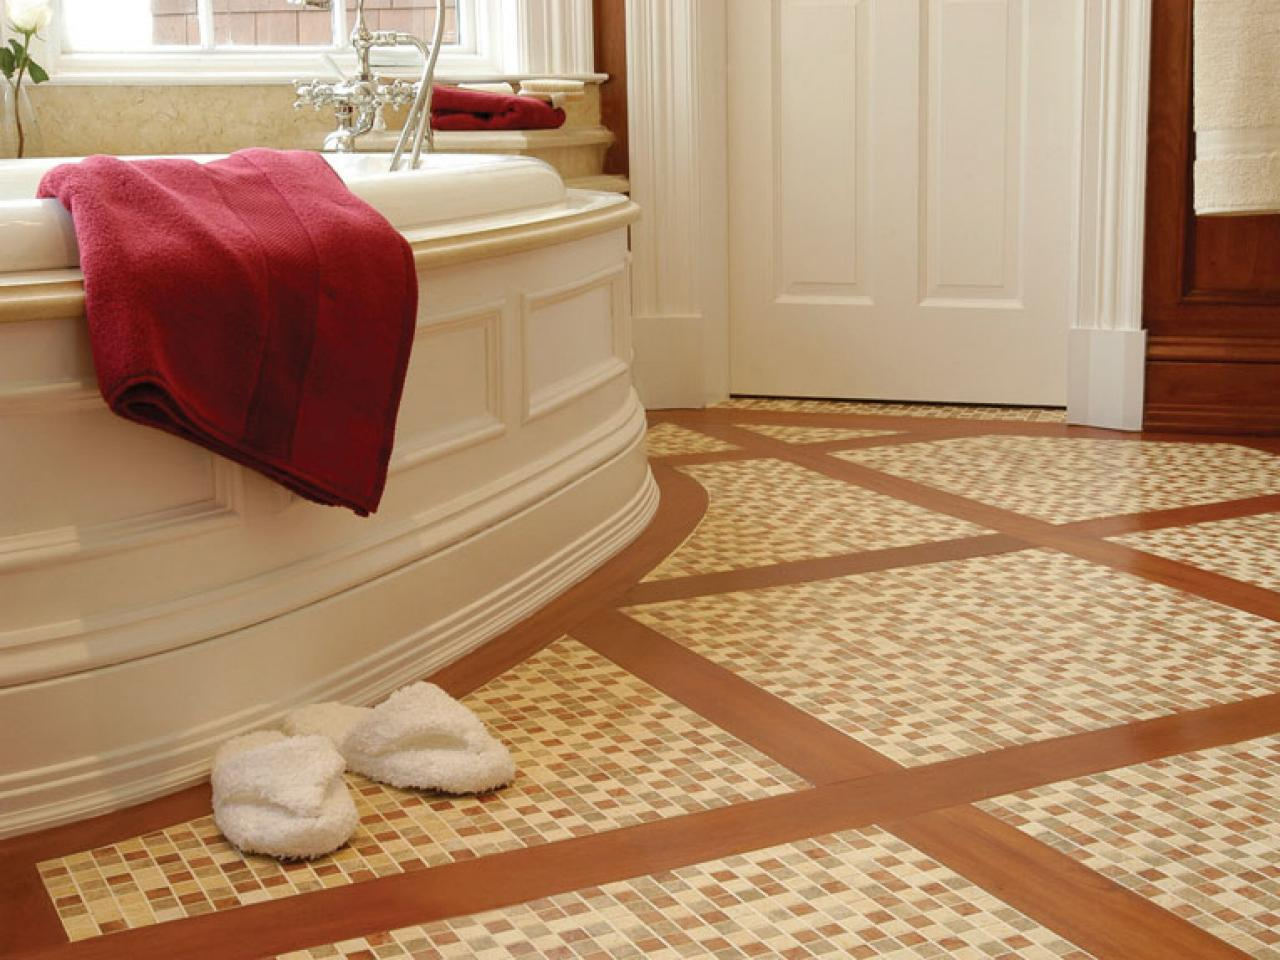 Choosing bathroom flooring hgtv for Bathroom floor tile ideas